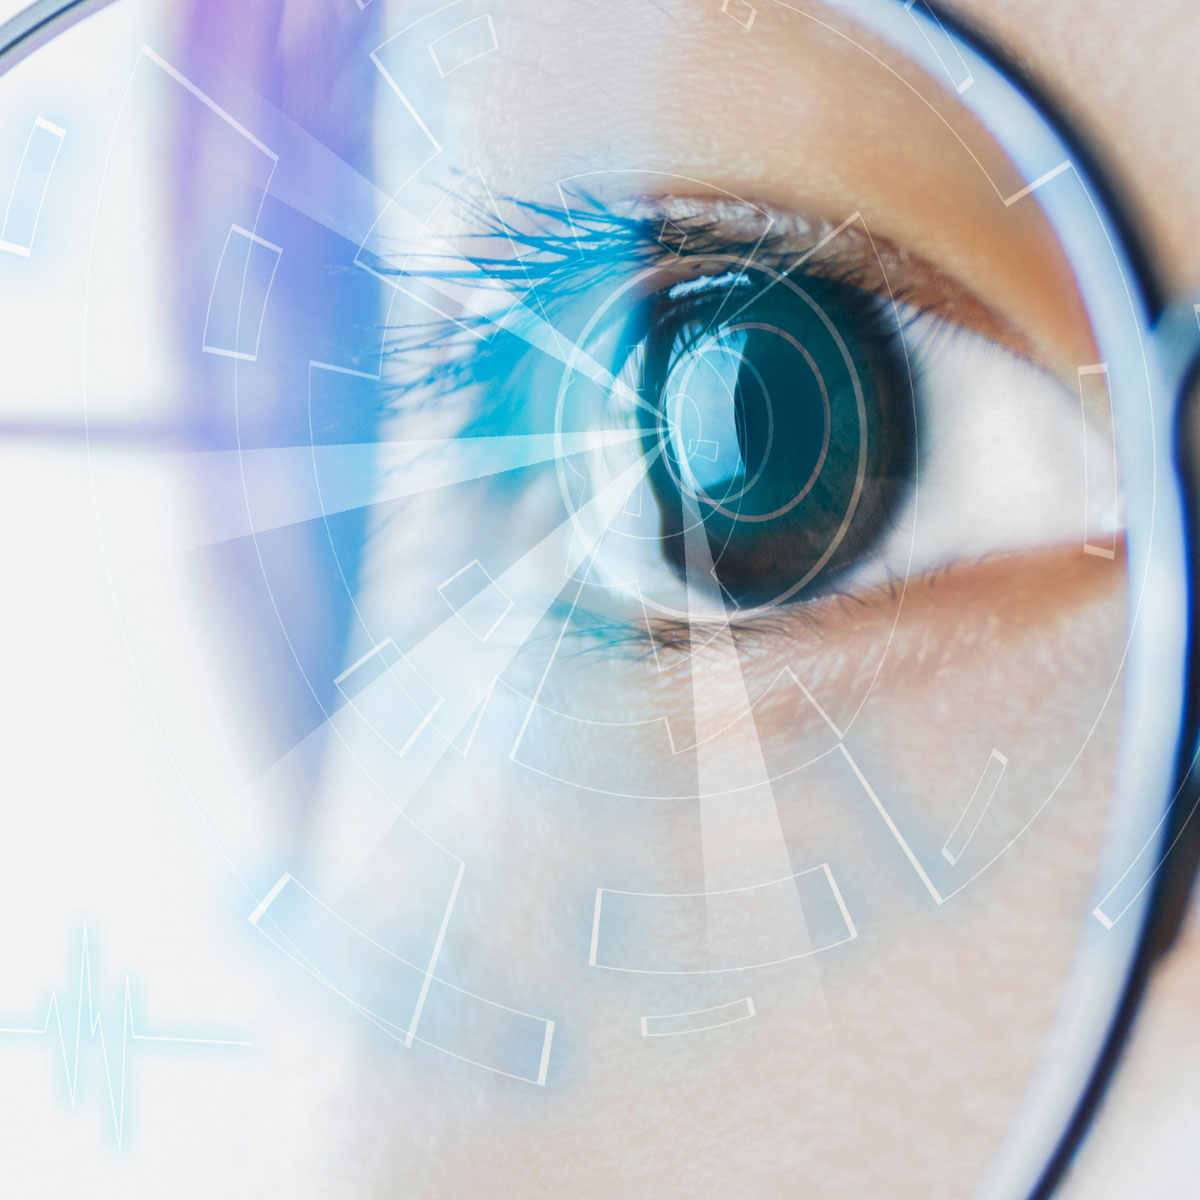 Augmented reality glasses eye close-up image